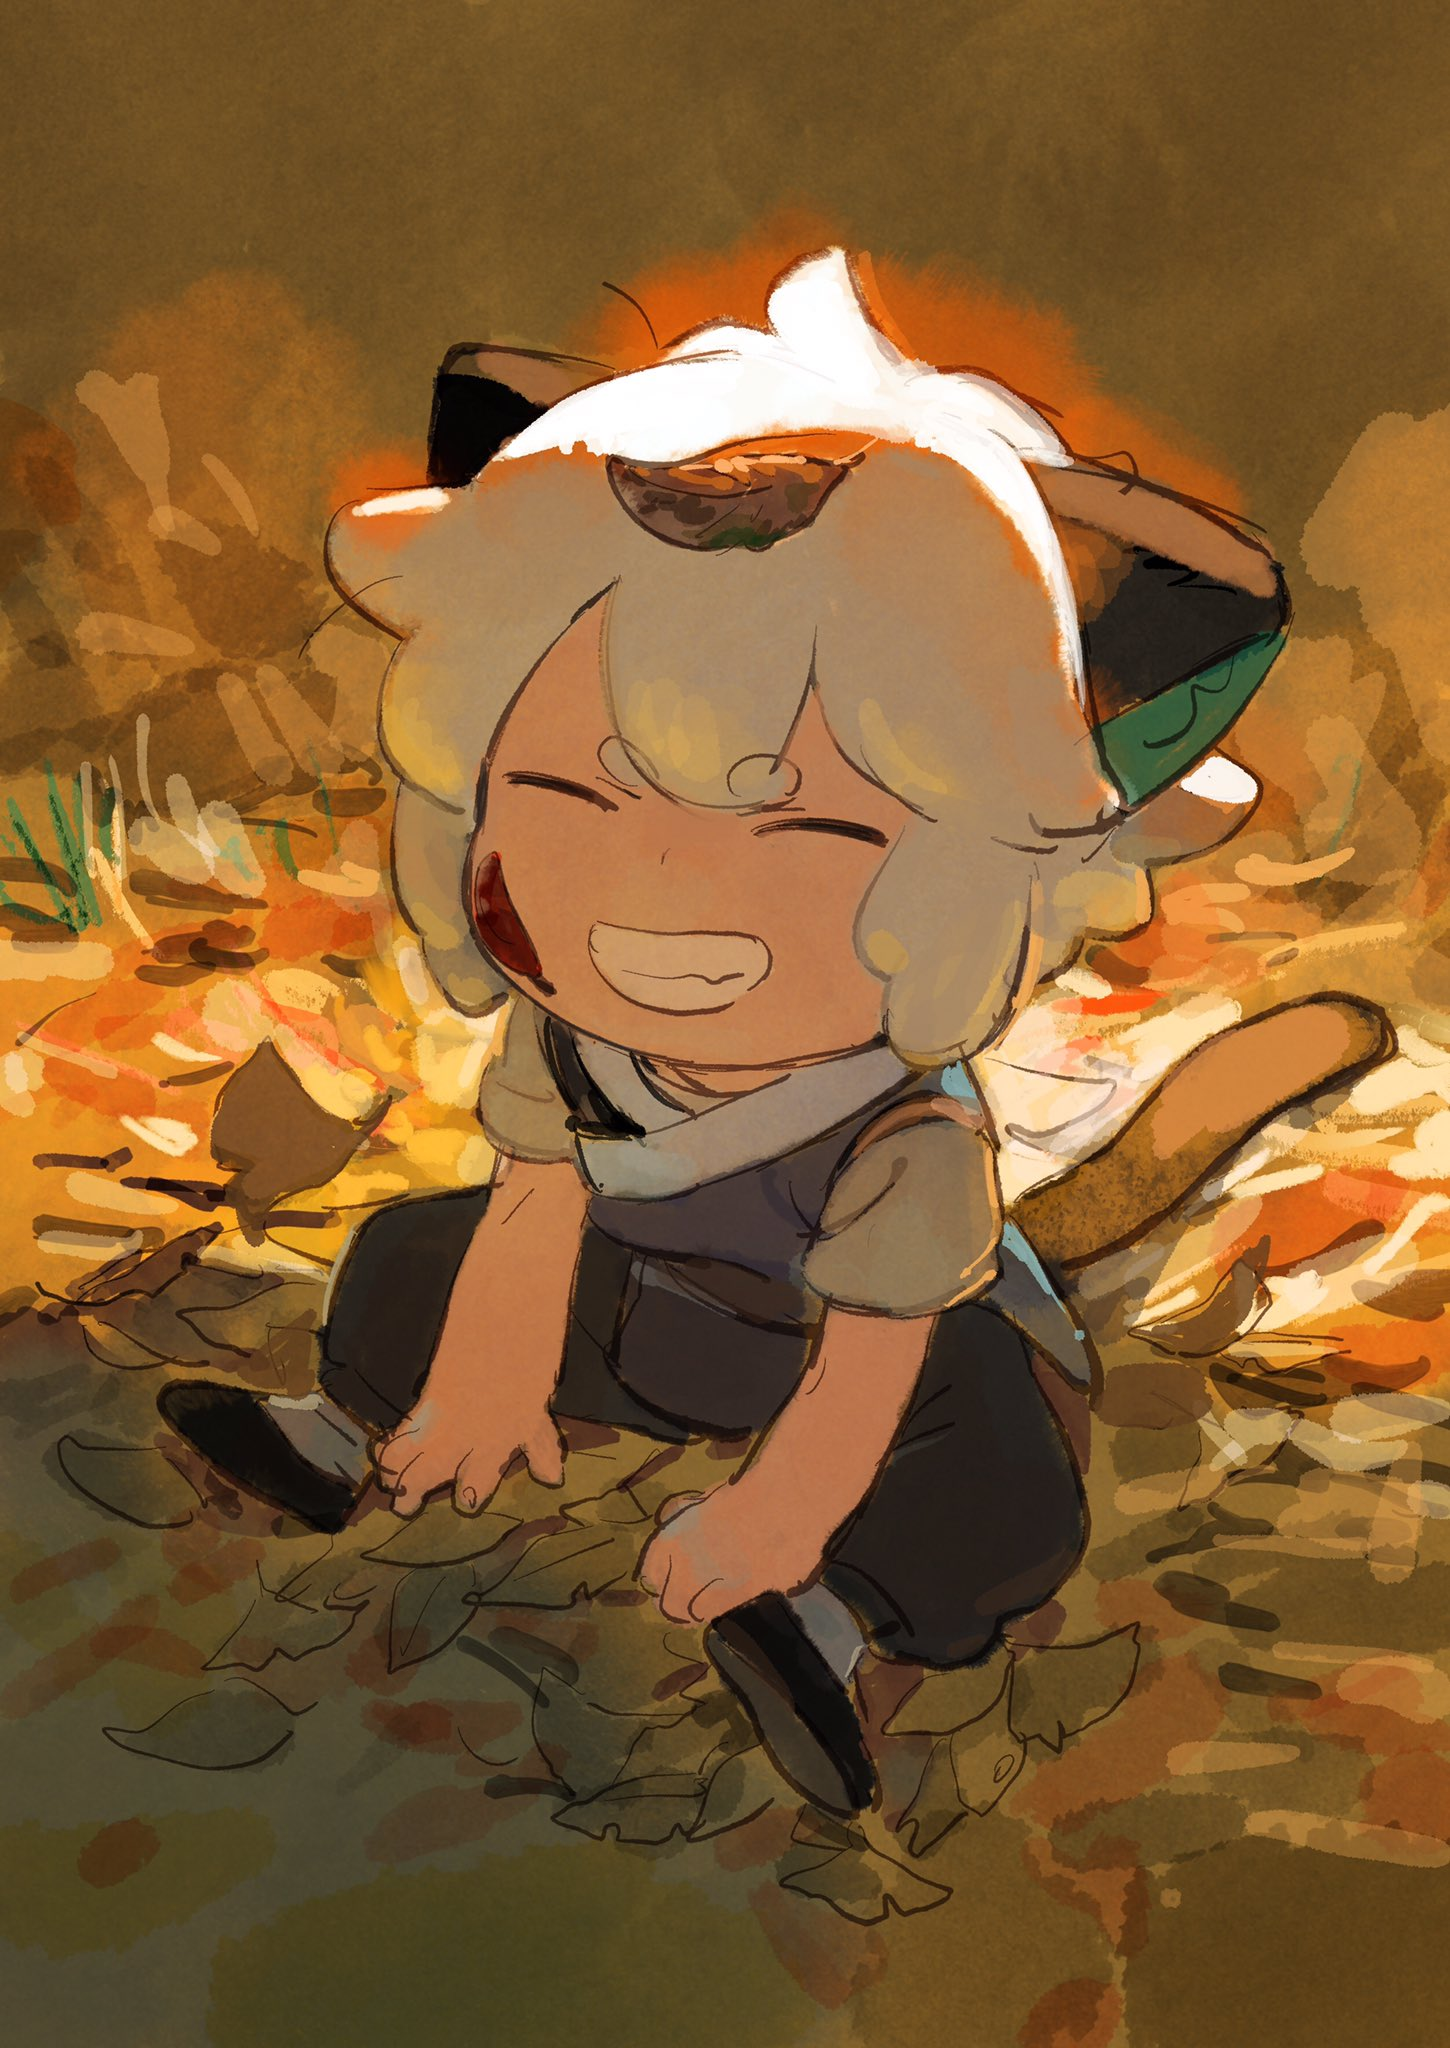 1boy animal_ears black_footwear black_pants cat_boy cat_ears cat_tail closed_eyes full_body highres leaf leaf_on_head luoxiaohei pants parted_lips shoes short_hair sitting smile solo tail the_legend_of_luo_xiaohei ukumo_uichi white_hair